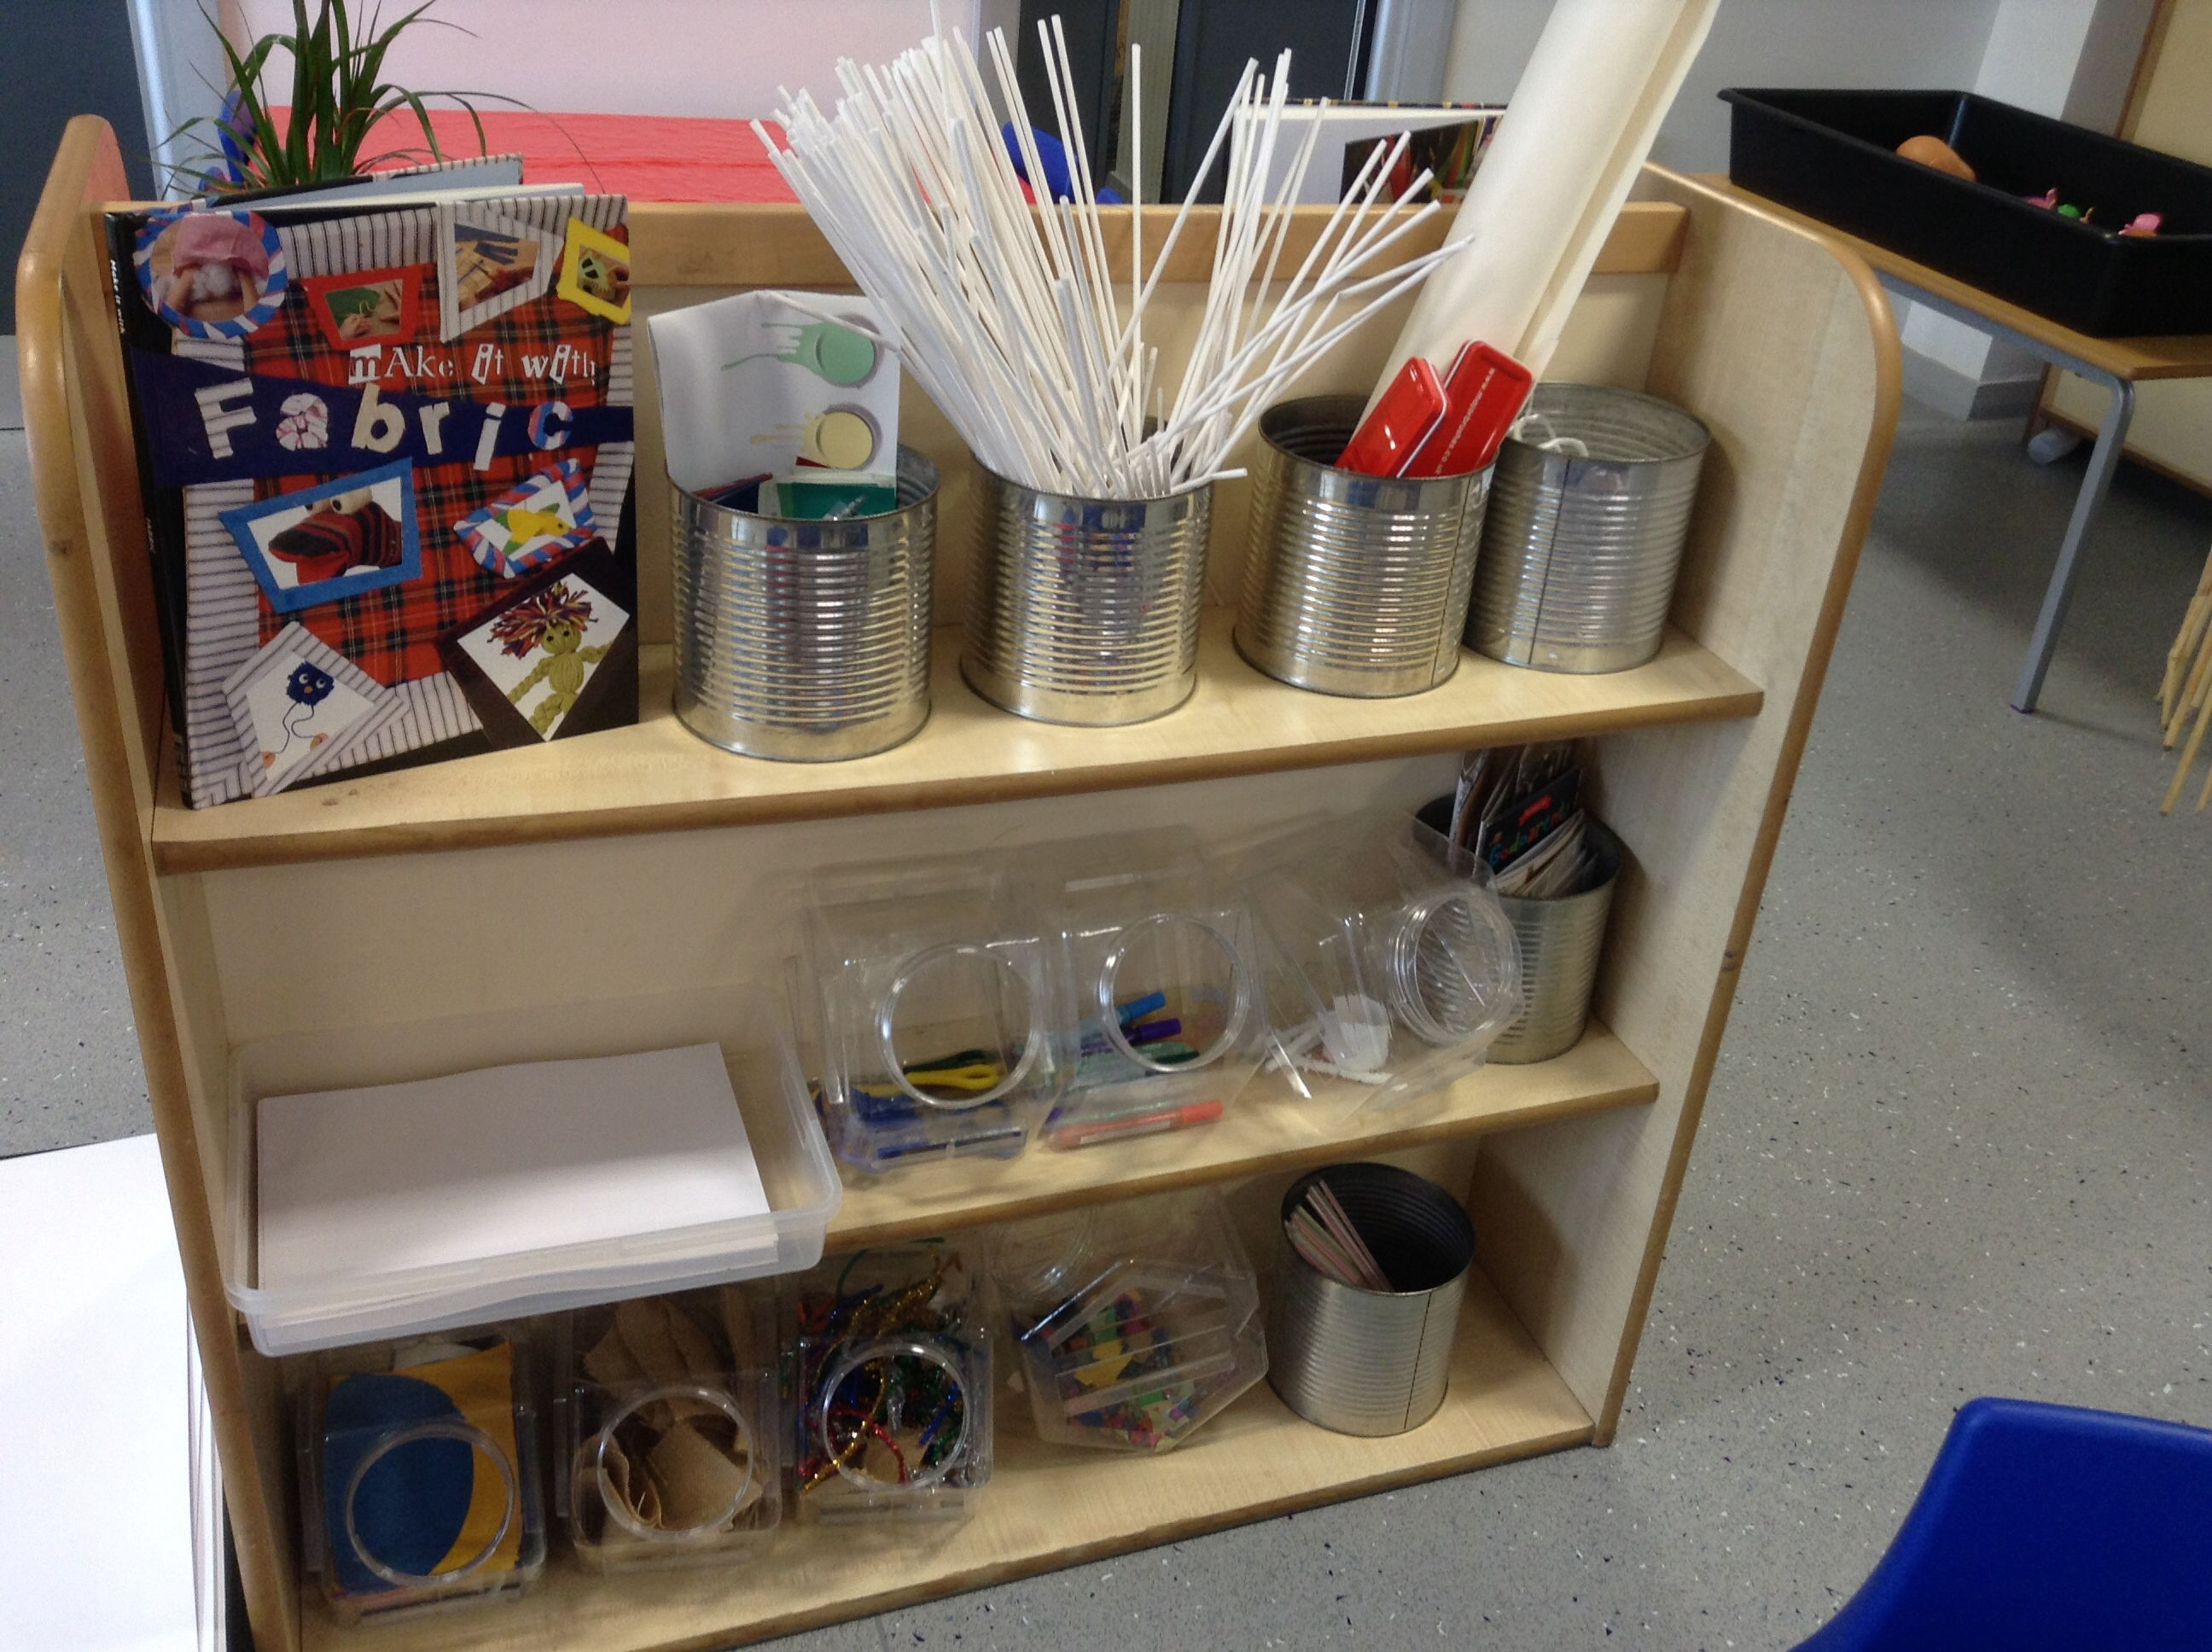 creative eyfs junk modelling early years area provision areas continuous classroom items children shelf preschool choose own organisation class reception